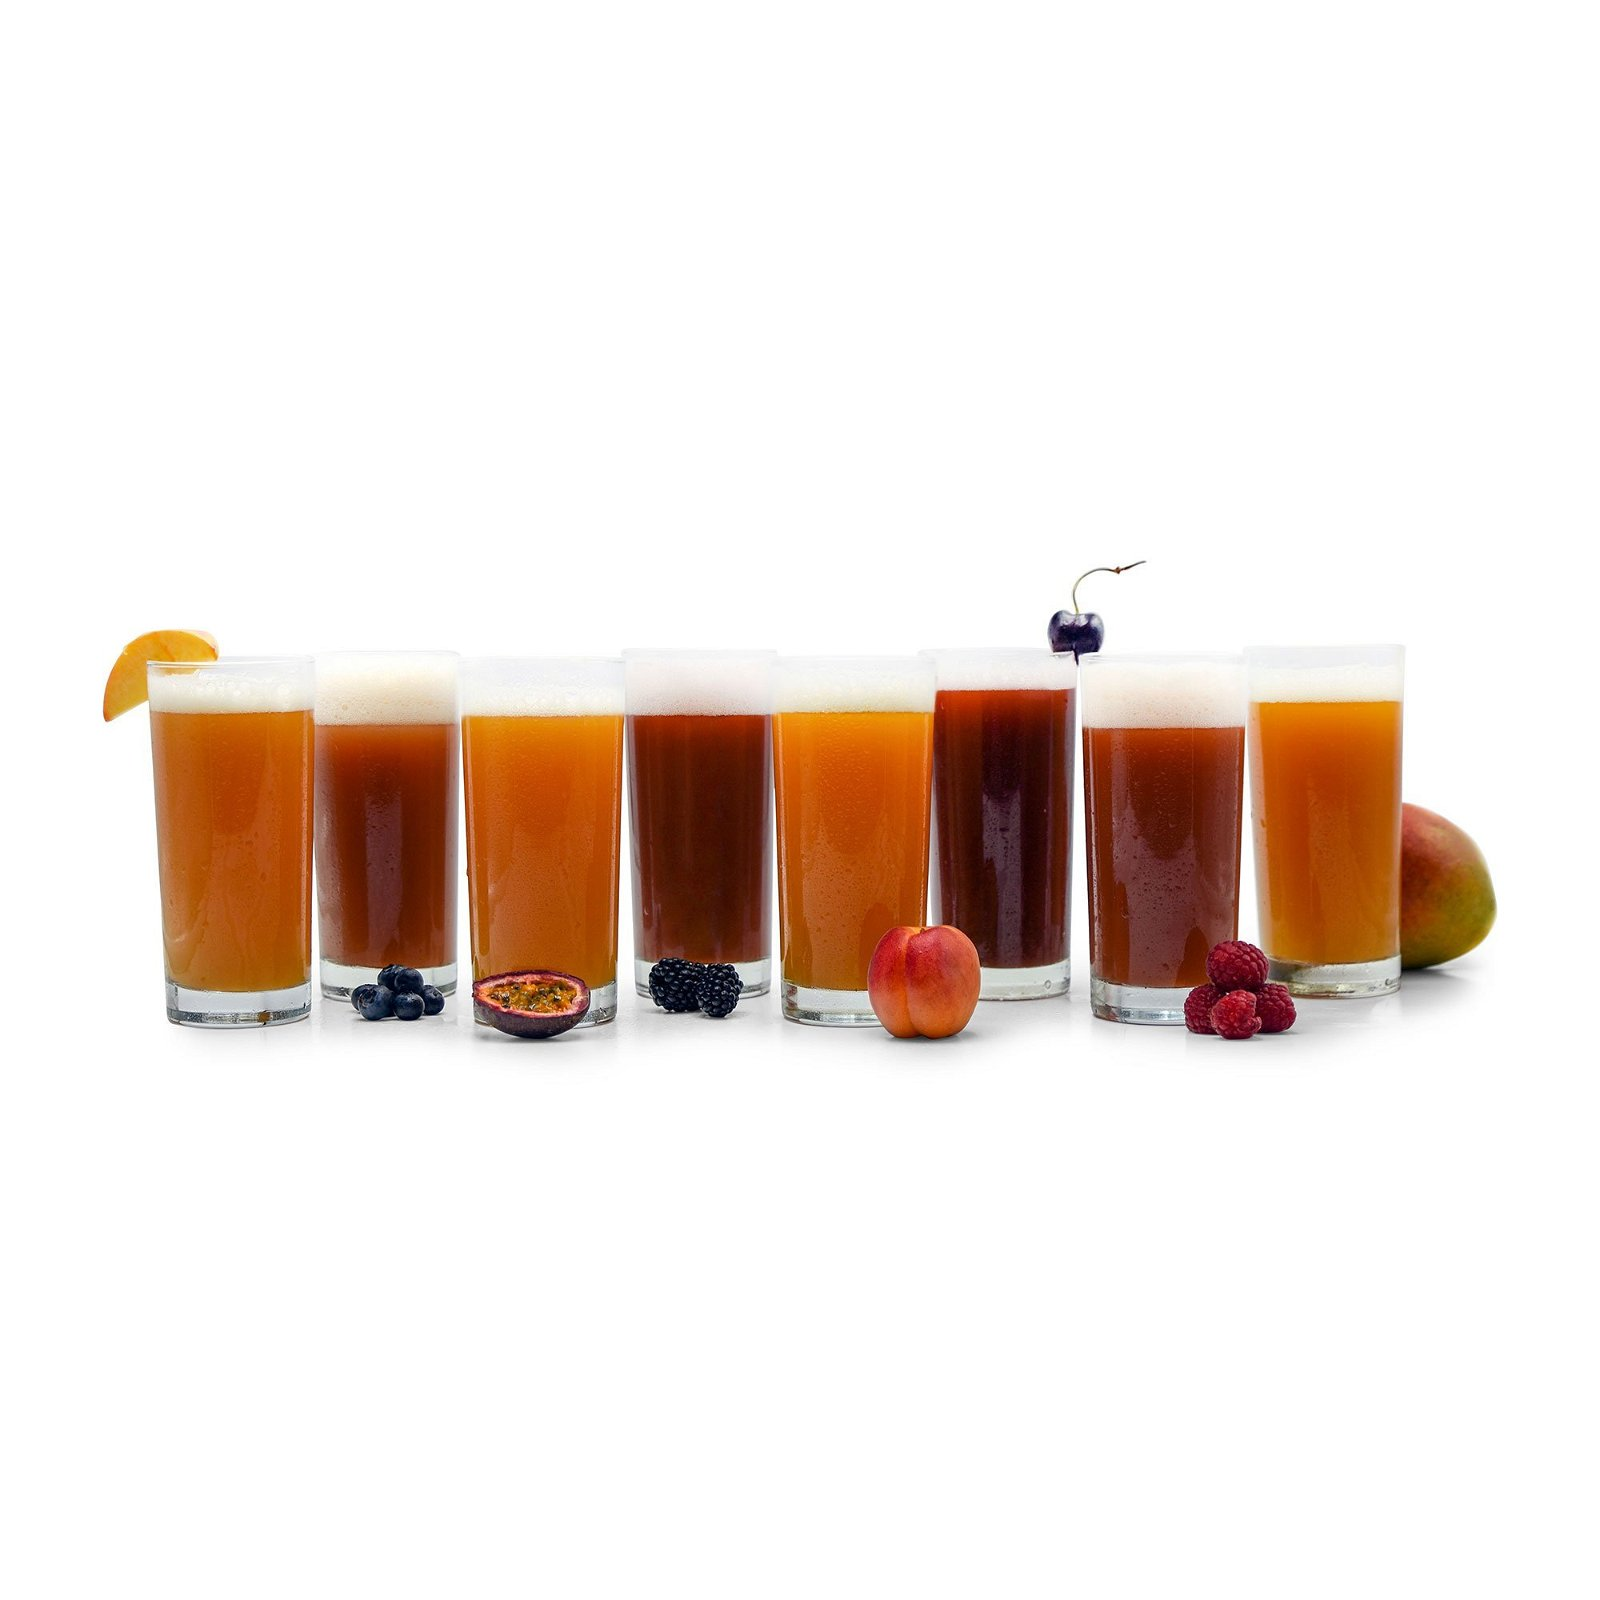 Funktional Fruit Sour Extract Beer Recipe Kit